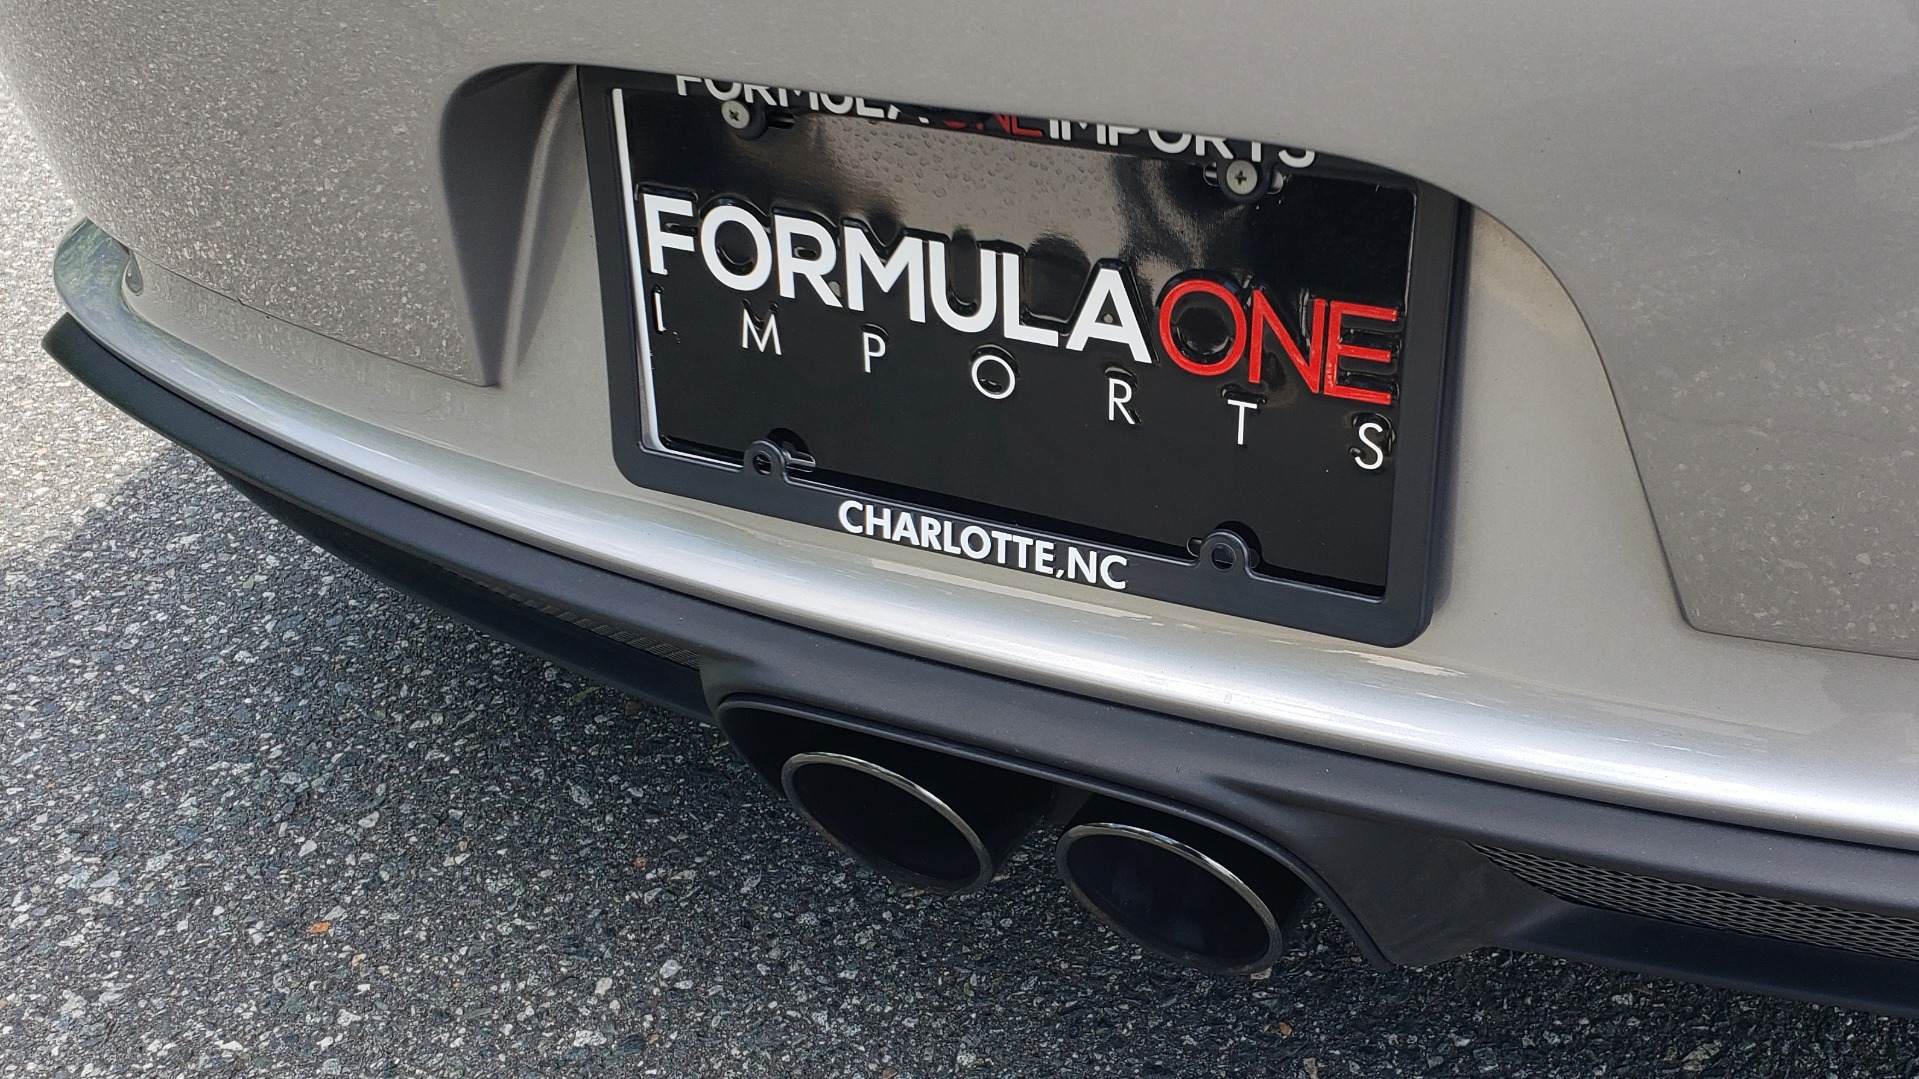 Used 2018 Porsche 911 GT3 4.0L 500HP / 6-SPD MNL / NAV / REARVIEW / PCCB for sale Sold at Formula Imports in Charlotte NC 28227 28